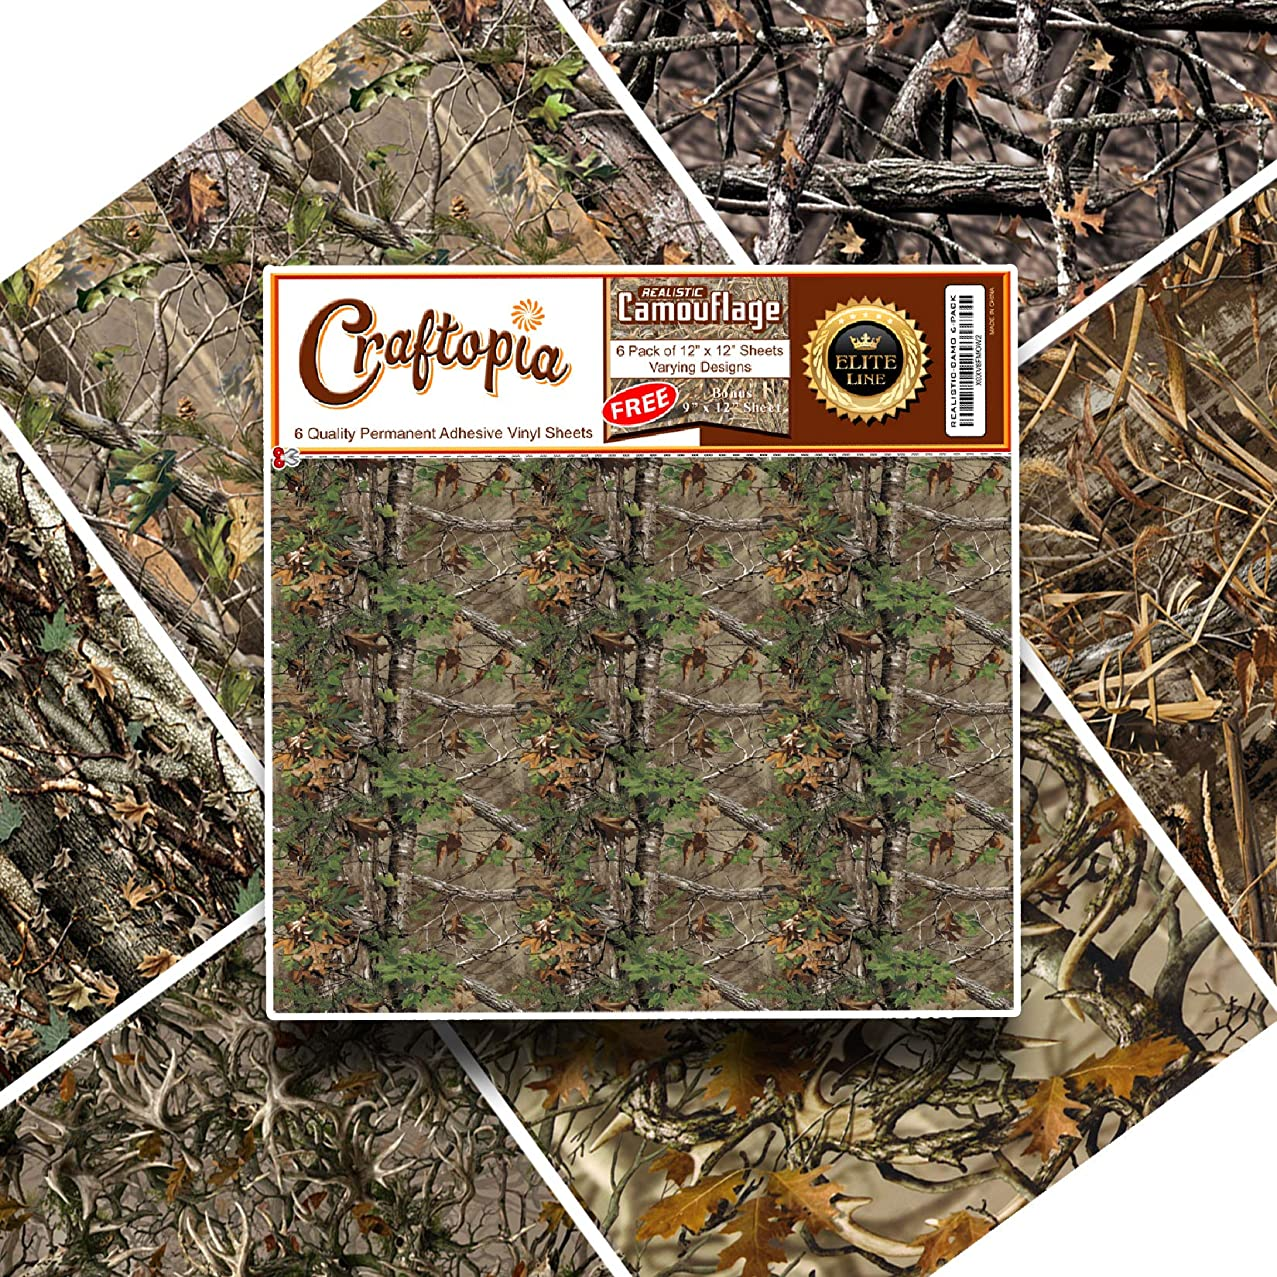 New Vinyl Camo Self Adhesive Assorted Vinyl Sheets (6+1 Pack) | Best Camoflage Vinyl for Cricut, Silhouette Cameo, Craft Cutters, Plotters, Letters, Decals (Realistic Real Camouflage 12